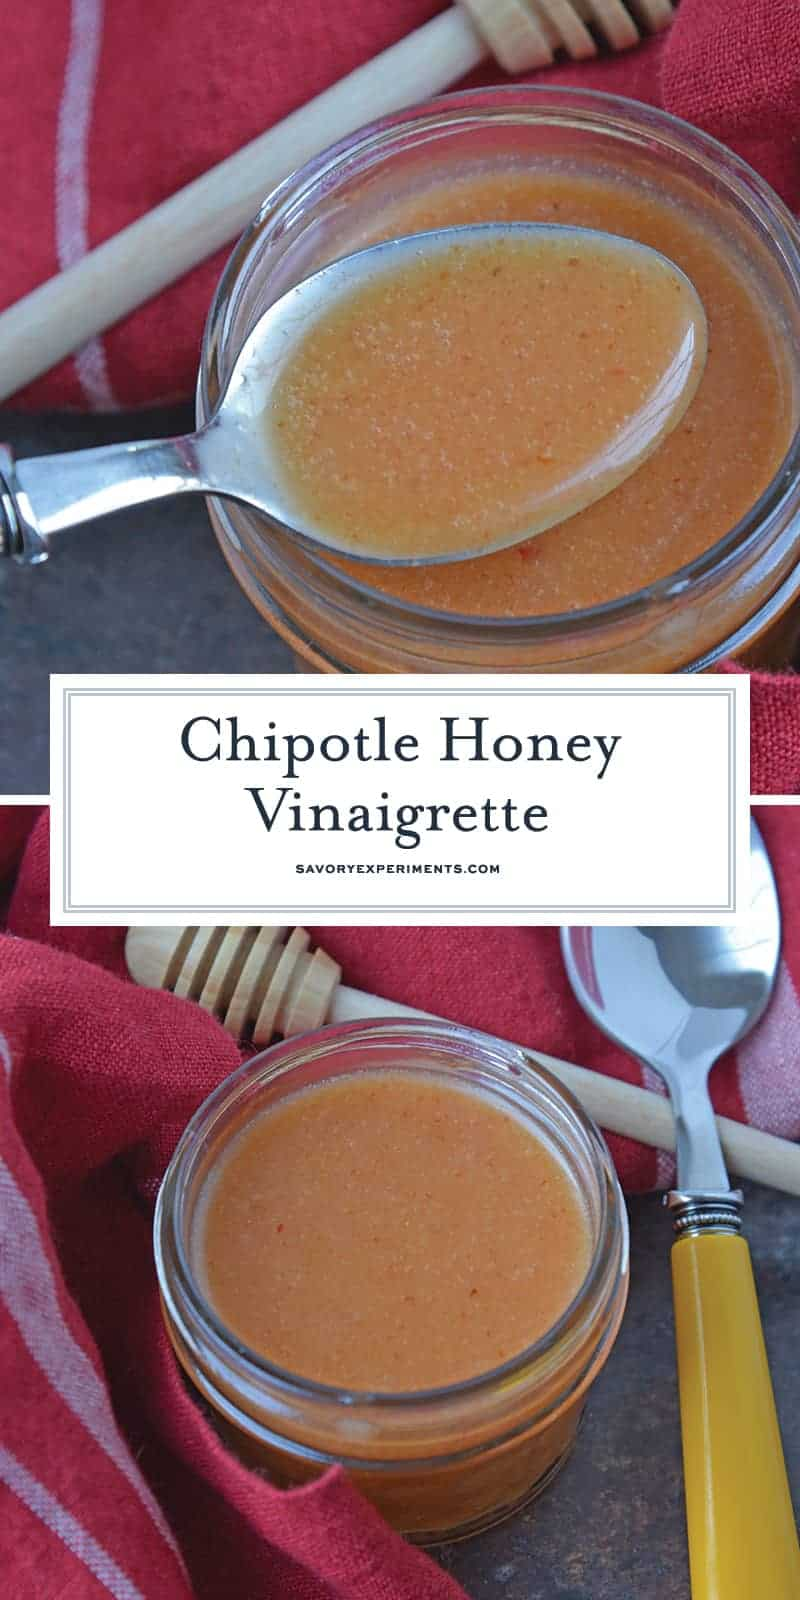 Chipotle Honey Vinaigrette is a sweet and peppery homemade salad dressing blend perfect for serving on fresh green salads, tacos or vegetables. #homemadesaladdressing www.savoryexperiments.com